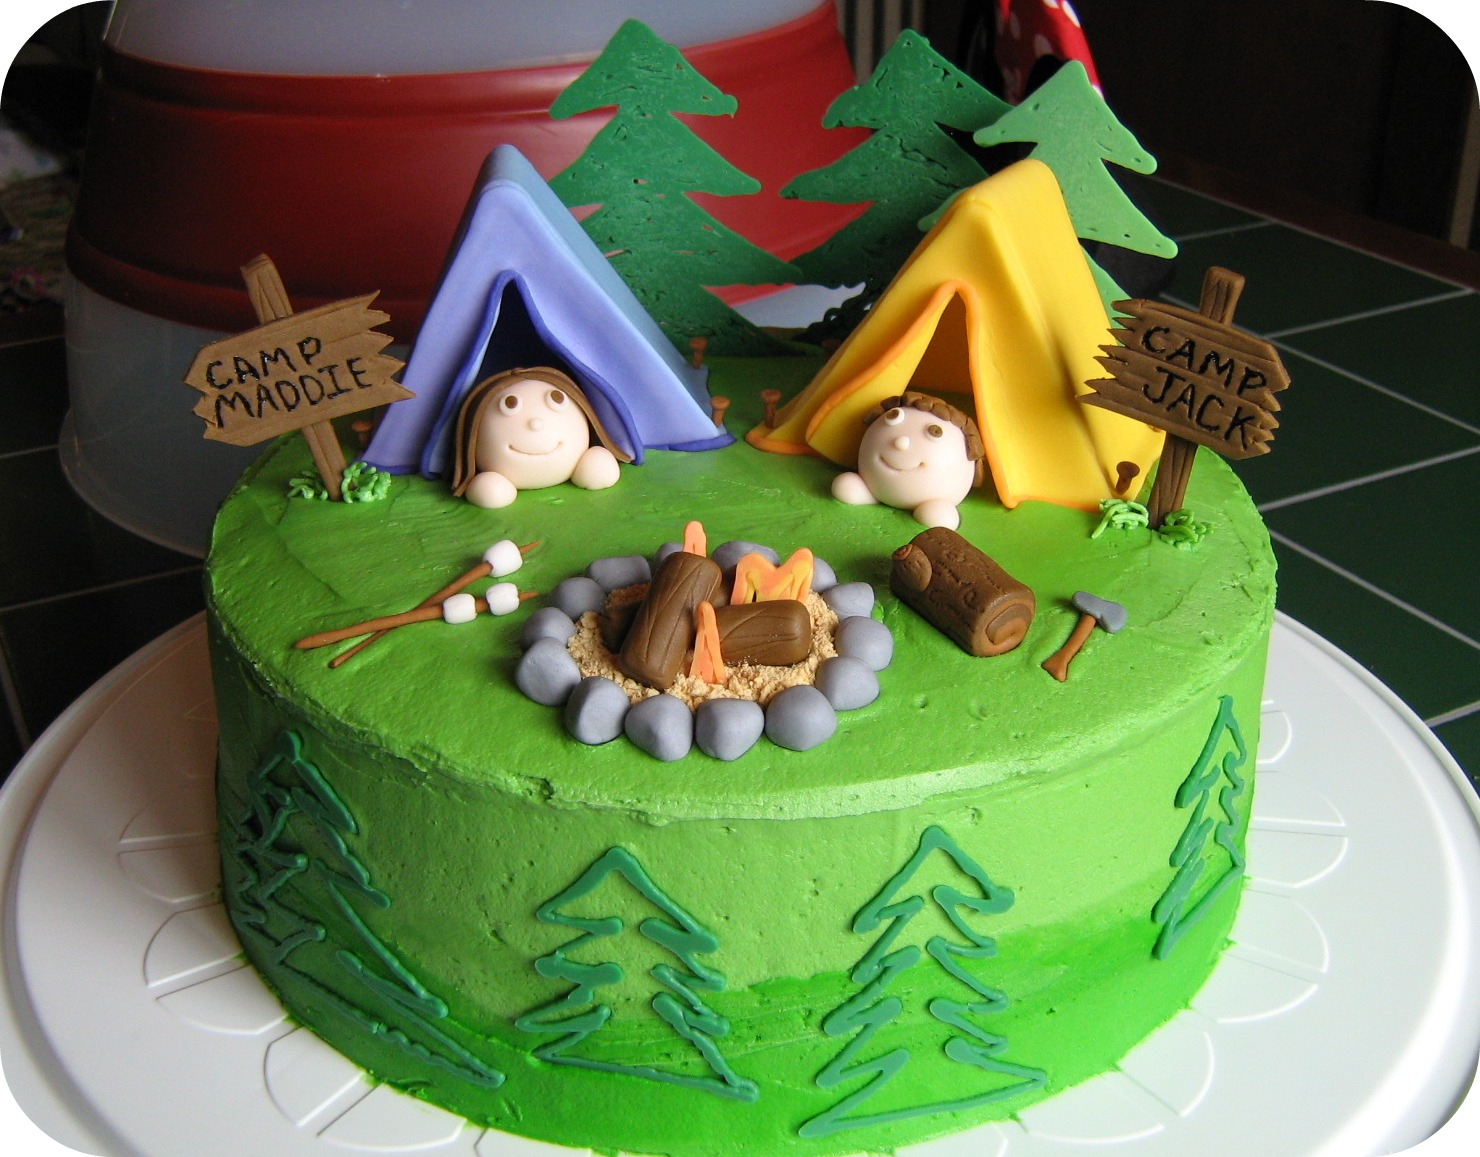 Cake Decorating For Party : Fowl Single File: A Cake for a Camping Party Theme